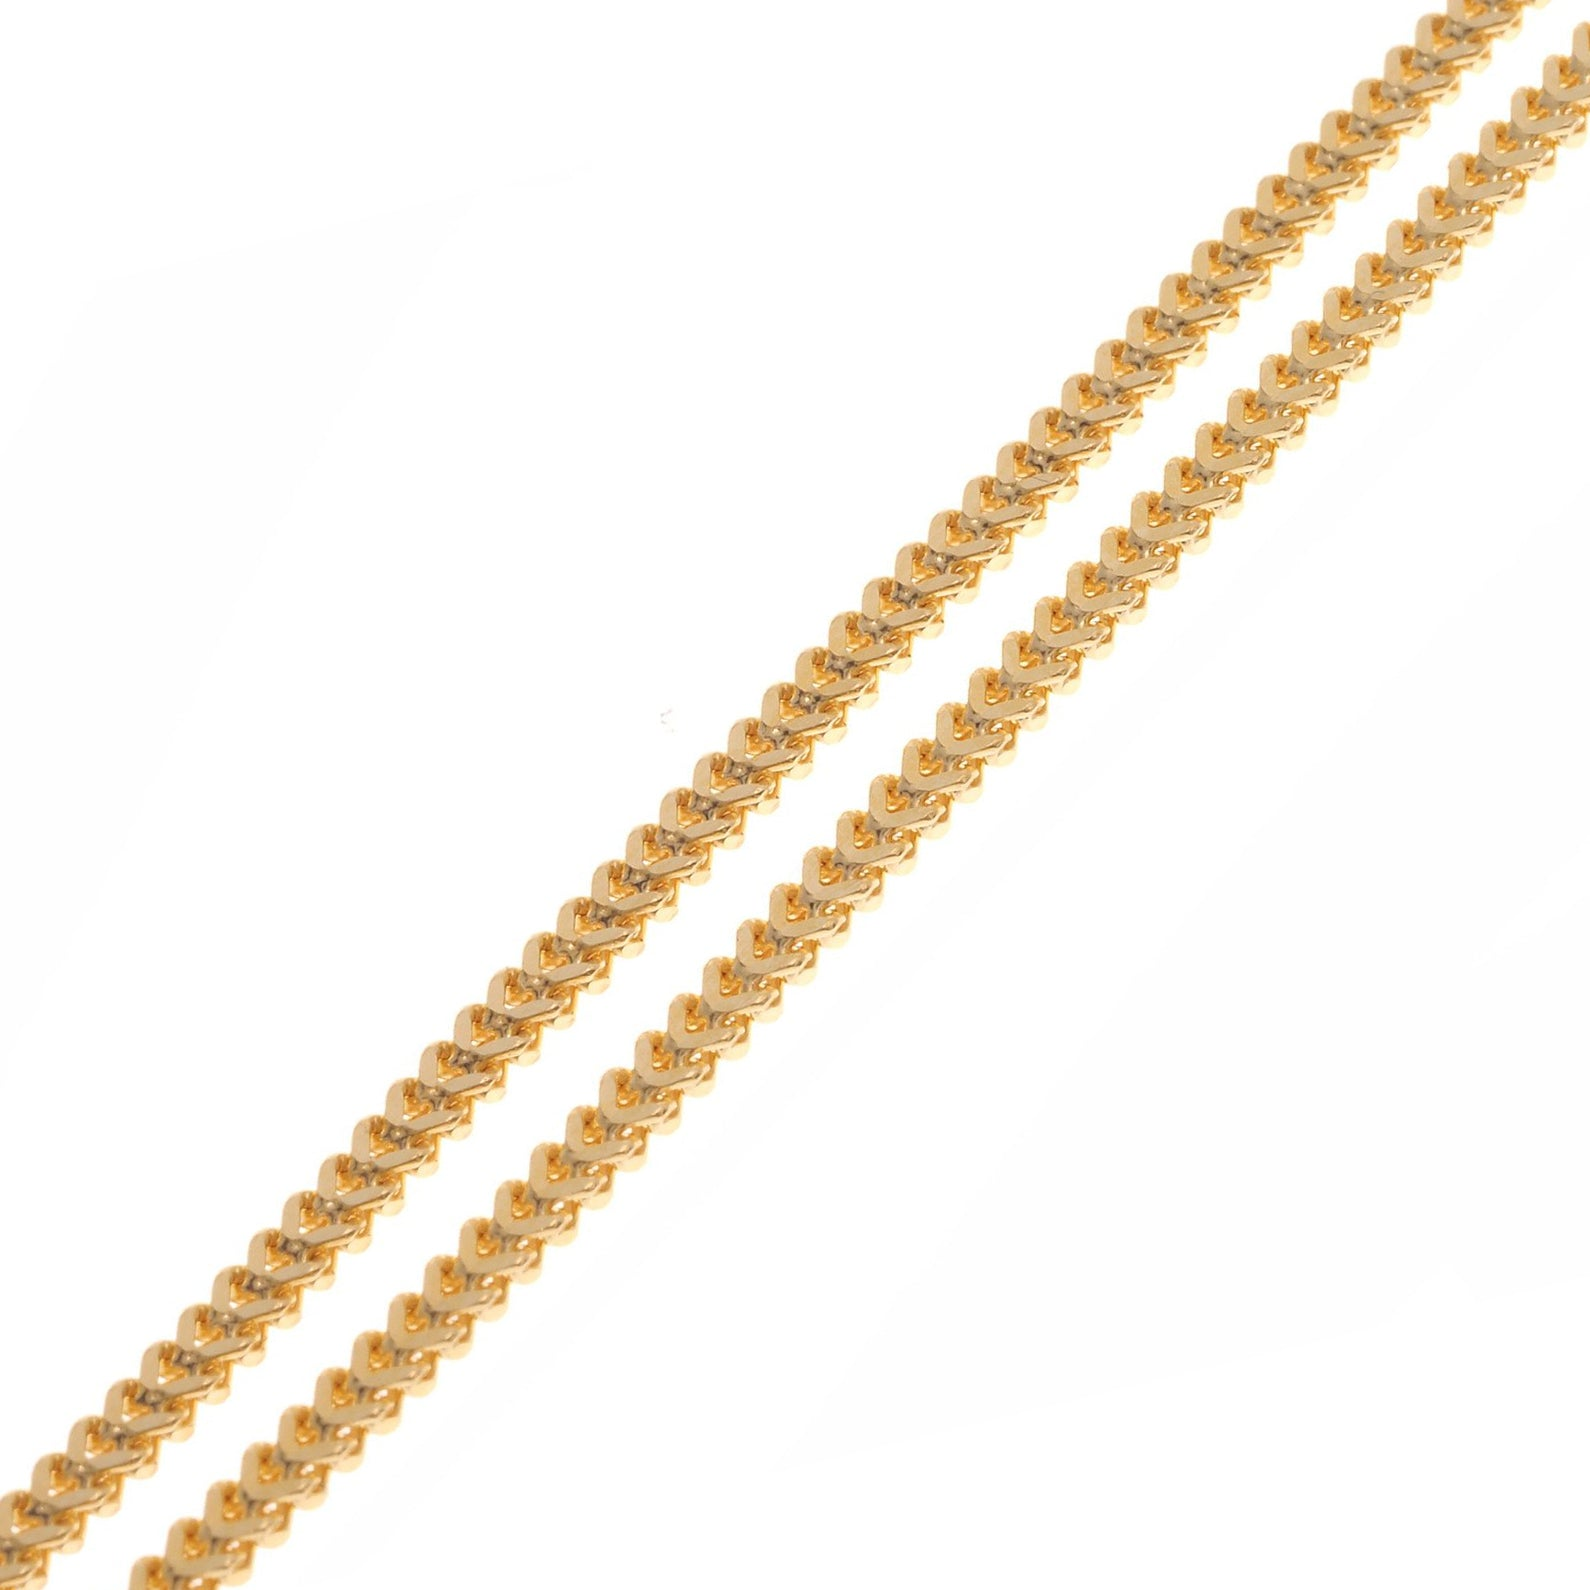 item in gold chains new com chain color plated aliexpress polishing steel fashion necklaces stainless accessories necklace on from plain jewelry long